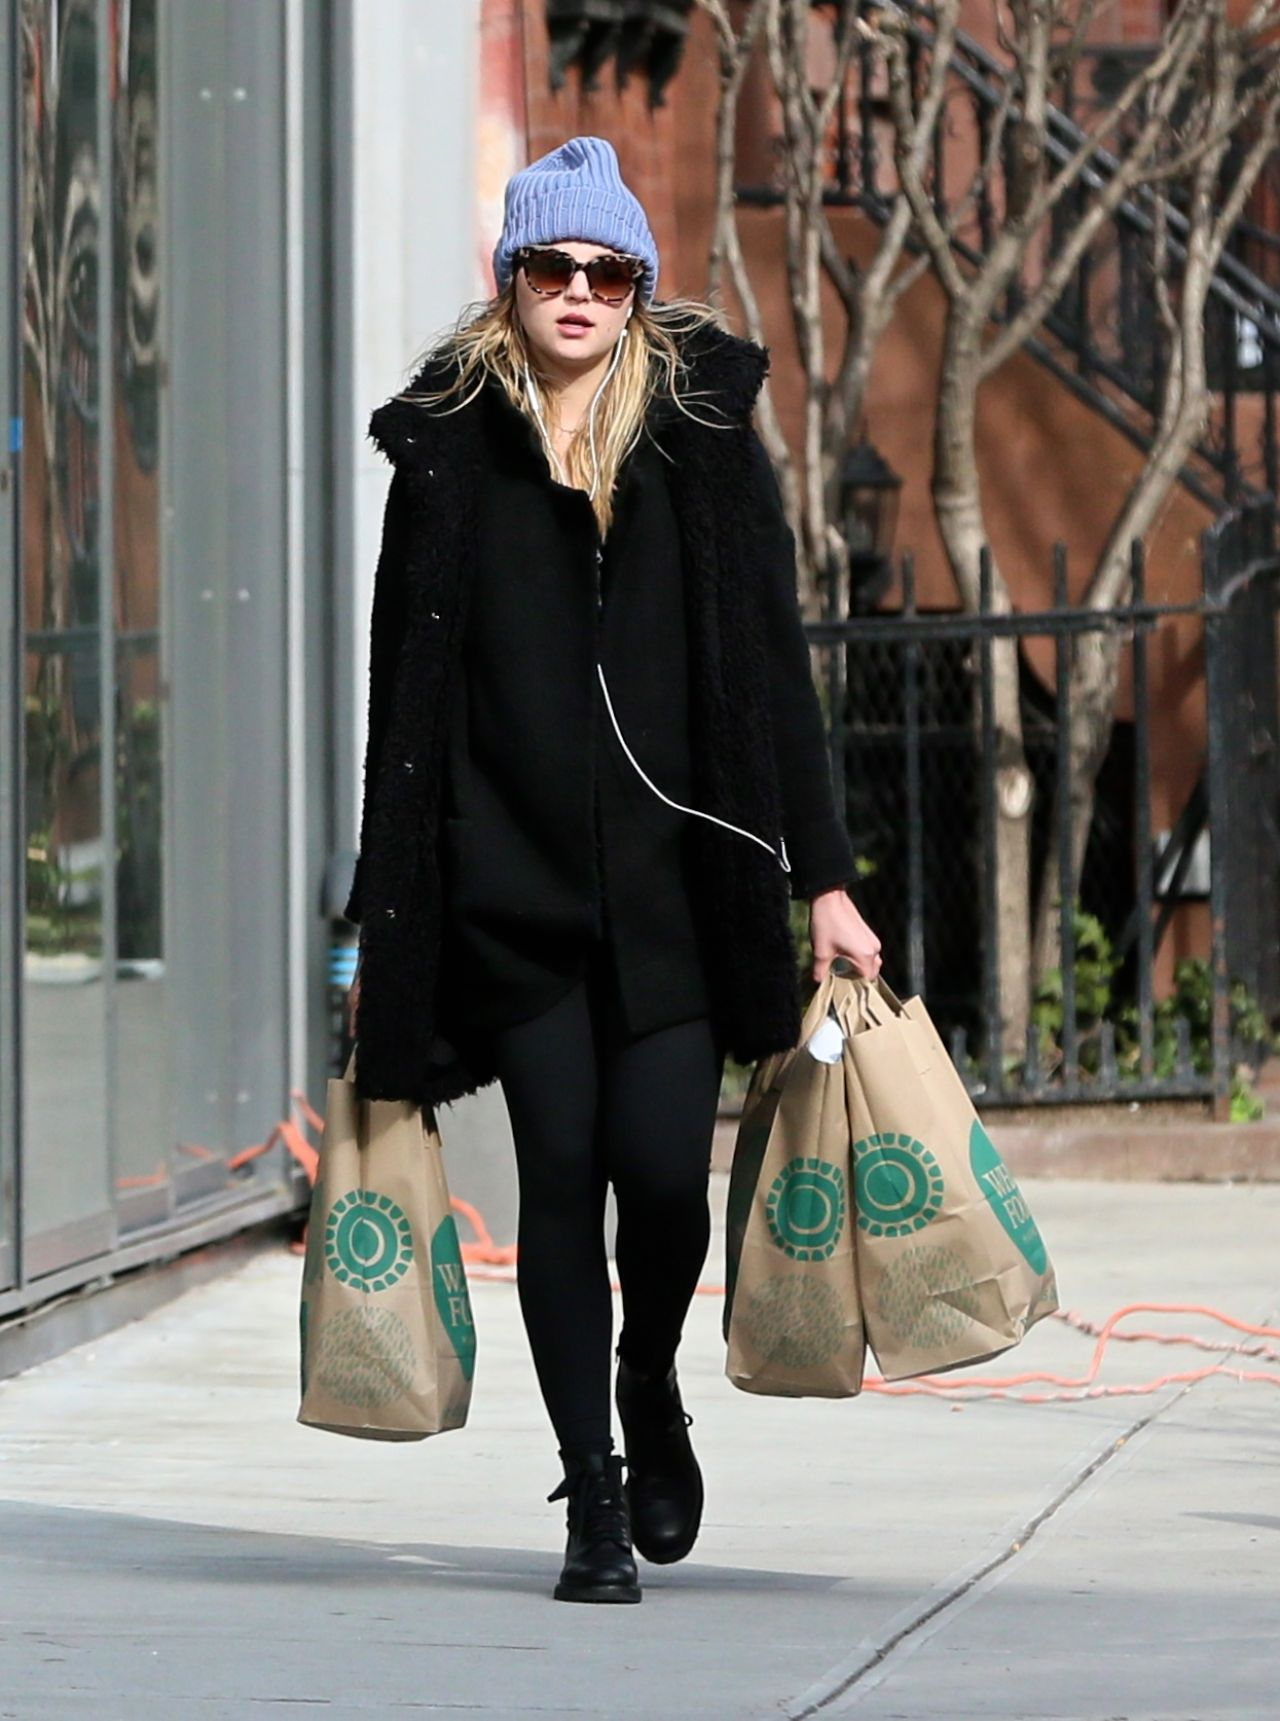 Rachel hilbert out shopping in new york naked (66 photos), Fappening Celebrity fotos